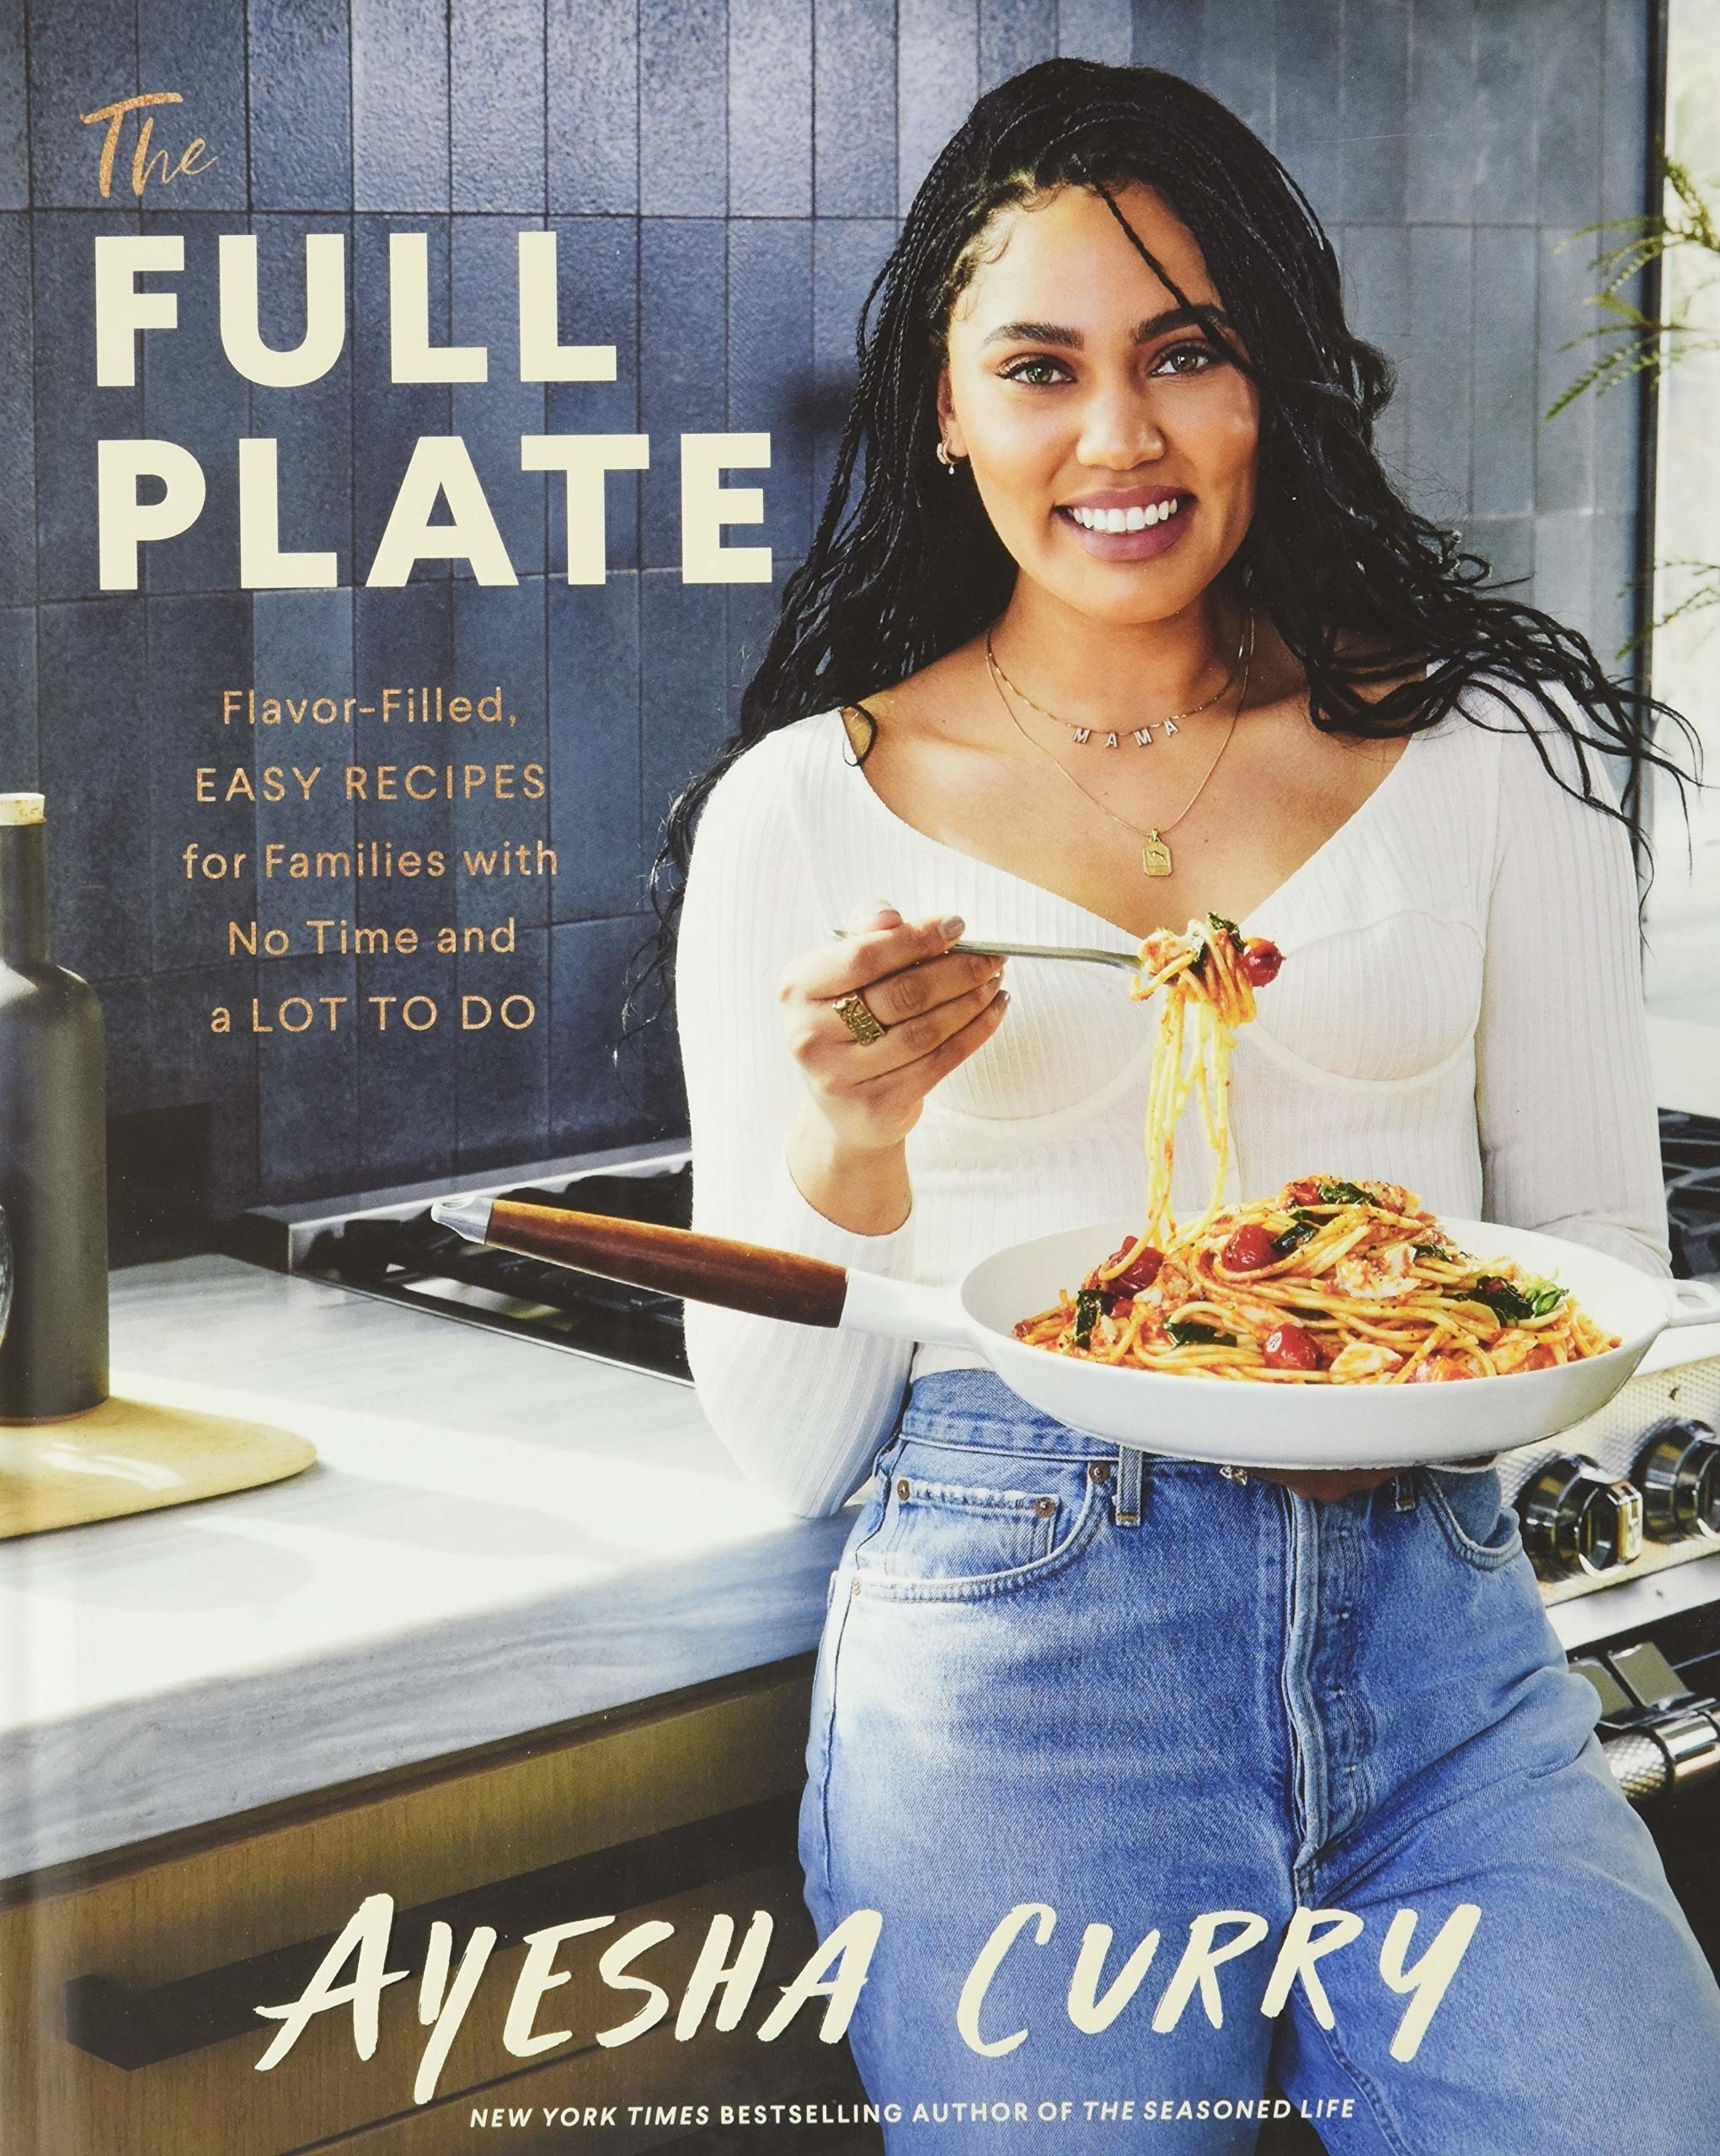 The cover of the book featuring author and chef Ayesha Curry